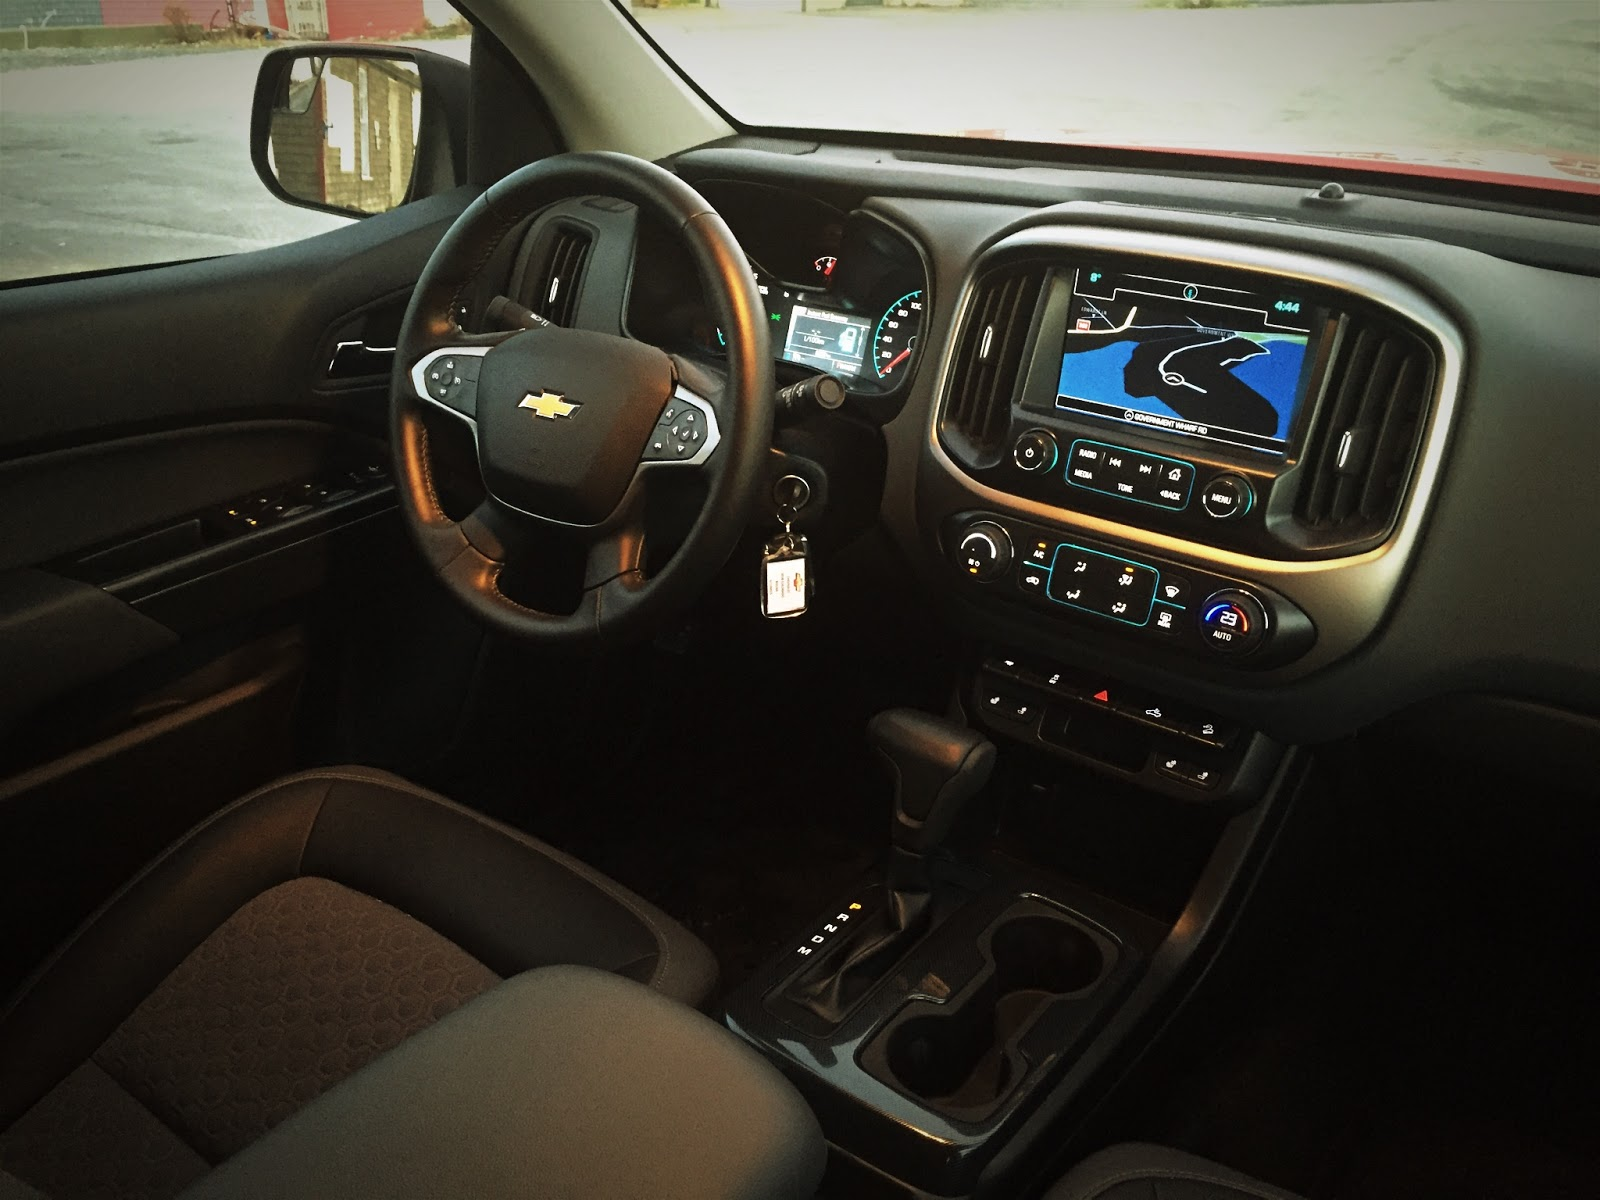 Pickup Trucks Earlier This Month The 2017 Ram 1500 Outdoorsman Ecosel And Ford F 150 Platinum Colorado S Interior Felt Cramped